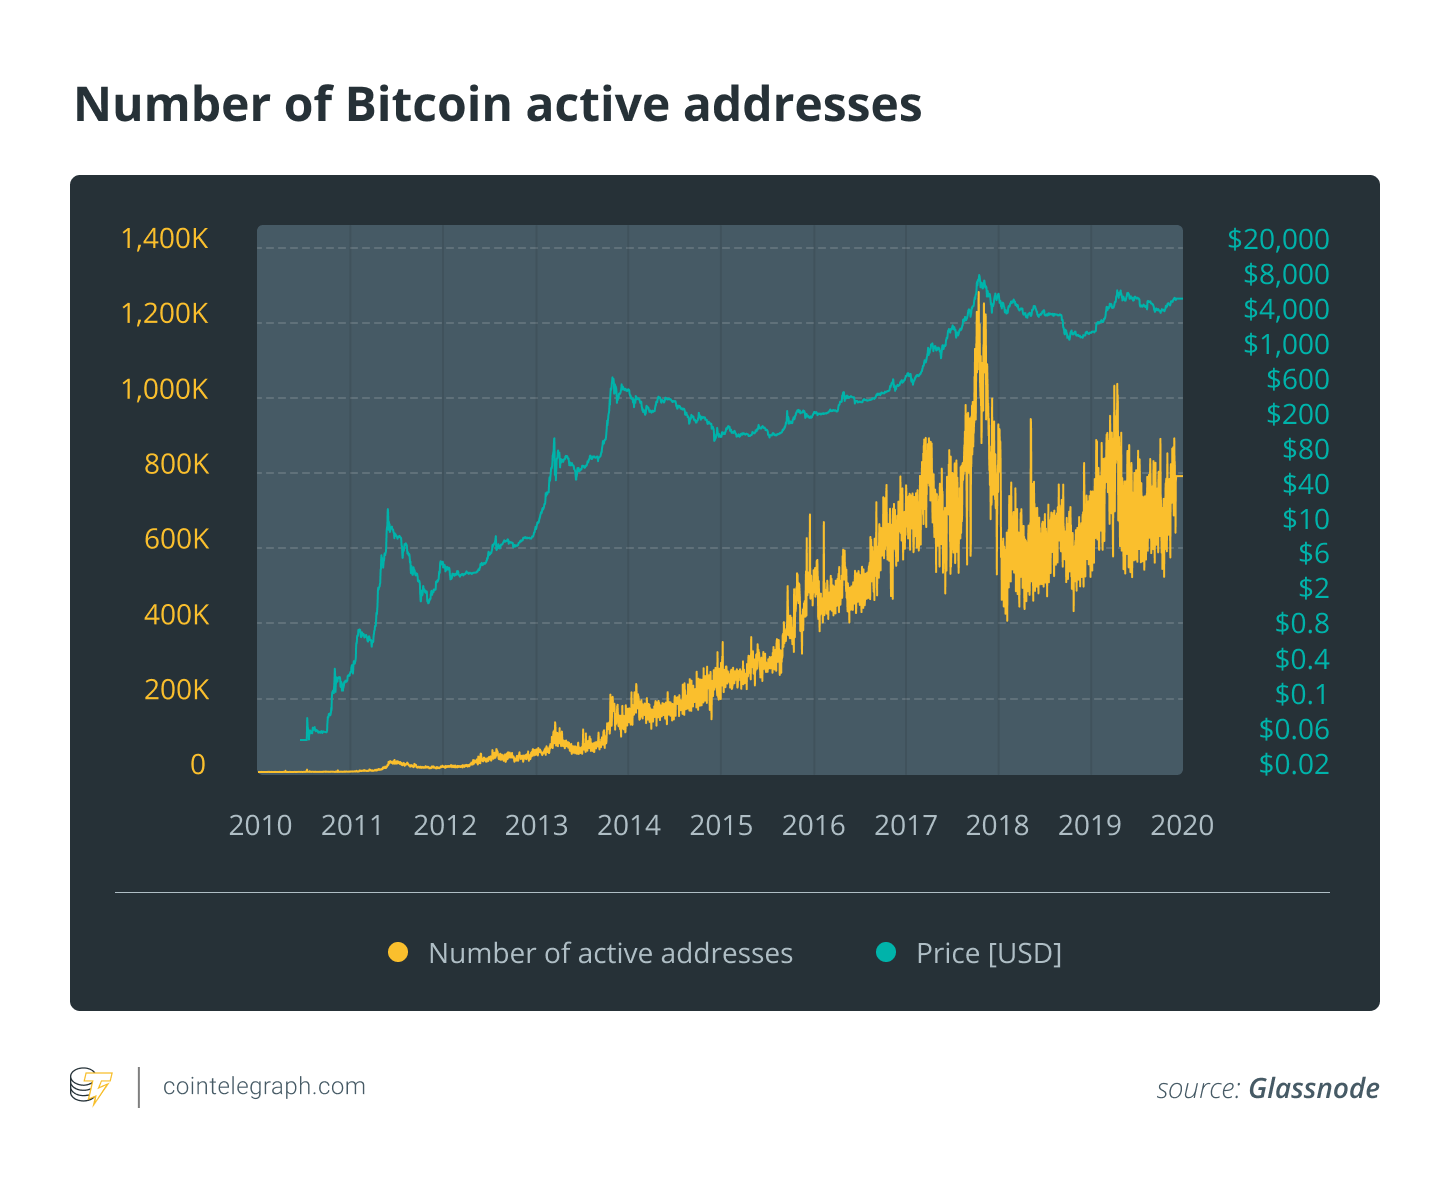 Number of Bitcoin active addresses